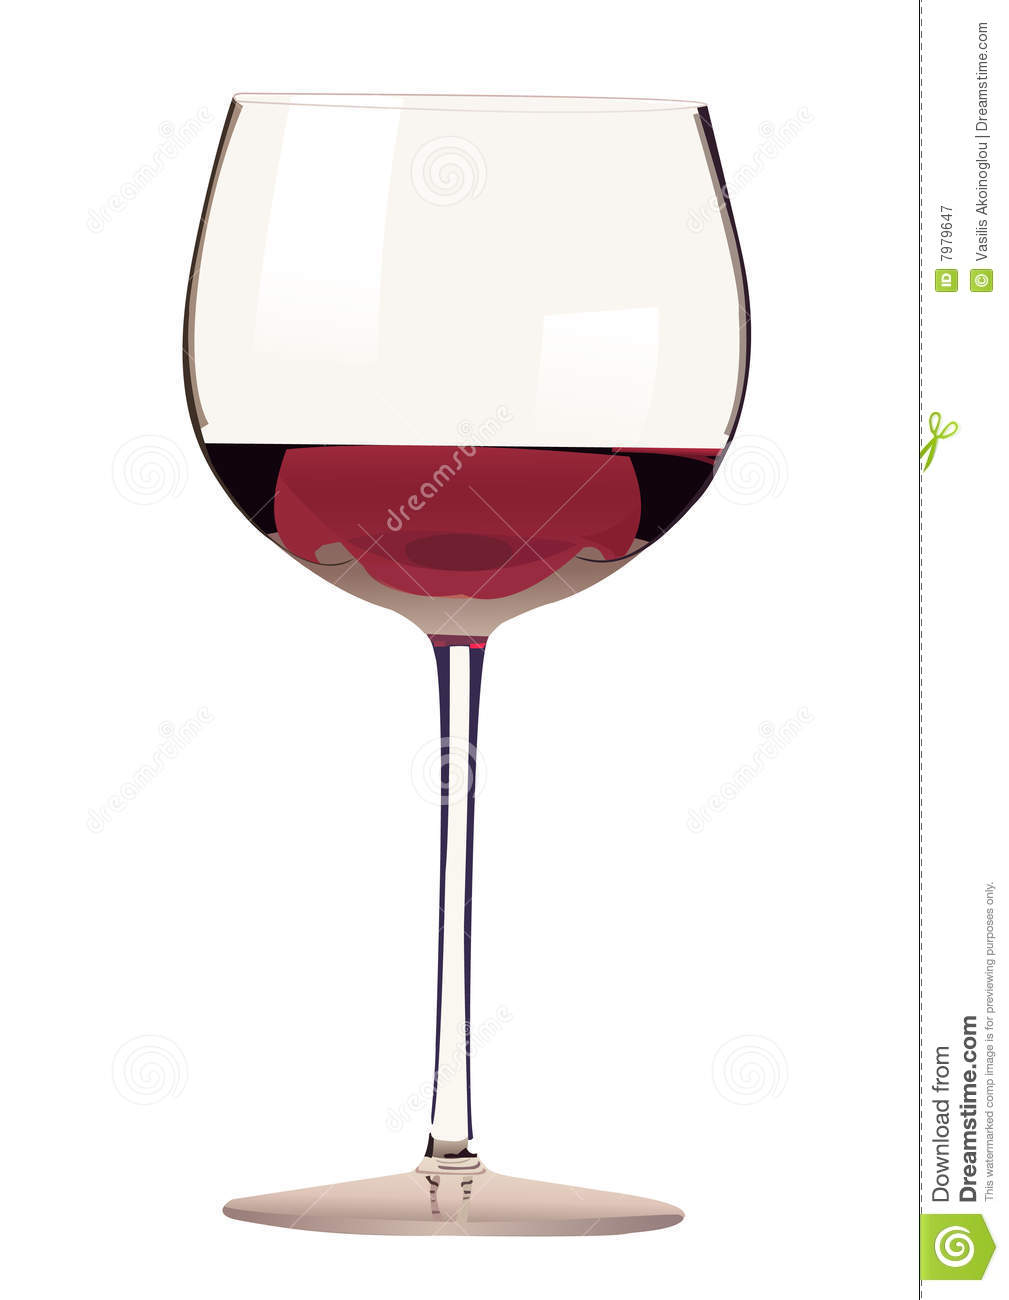 Glass Of Red Wine Illustration Stock Vector - Illustration ...